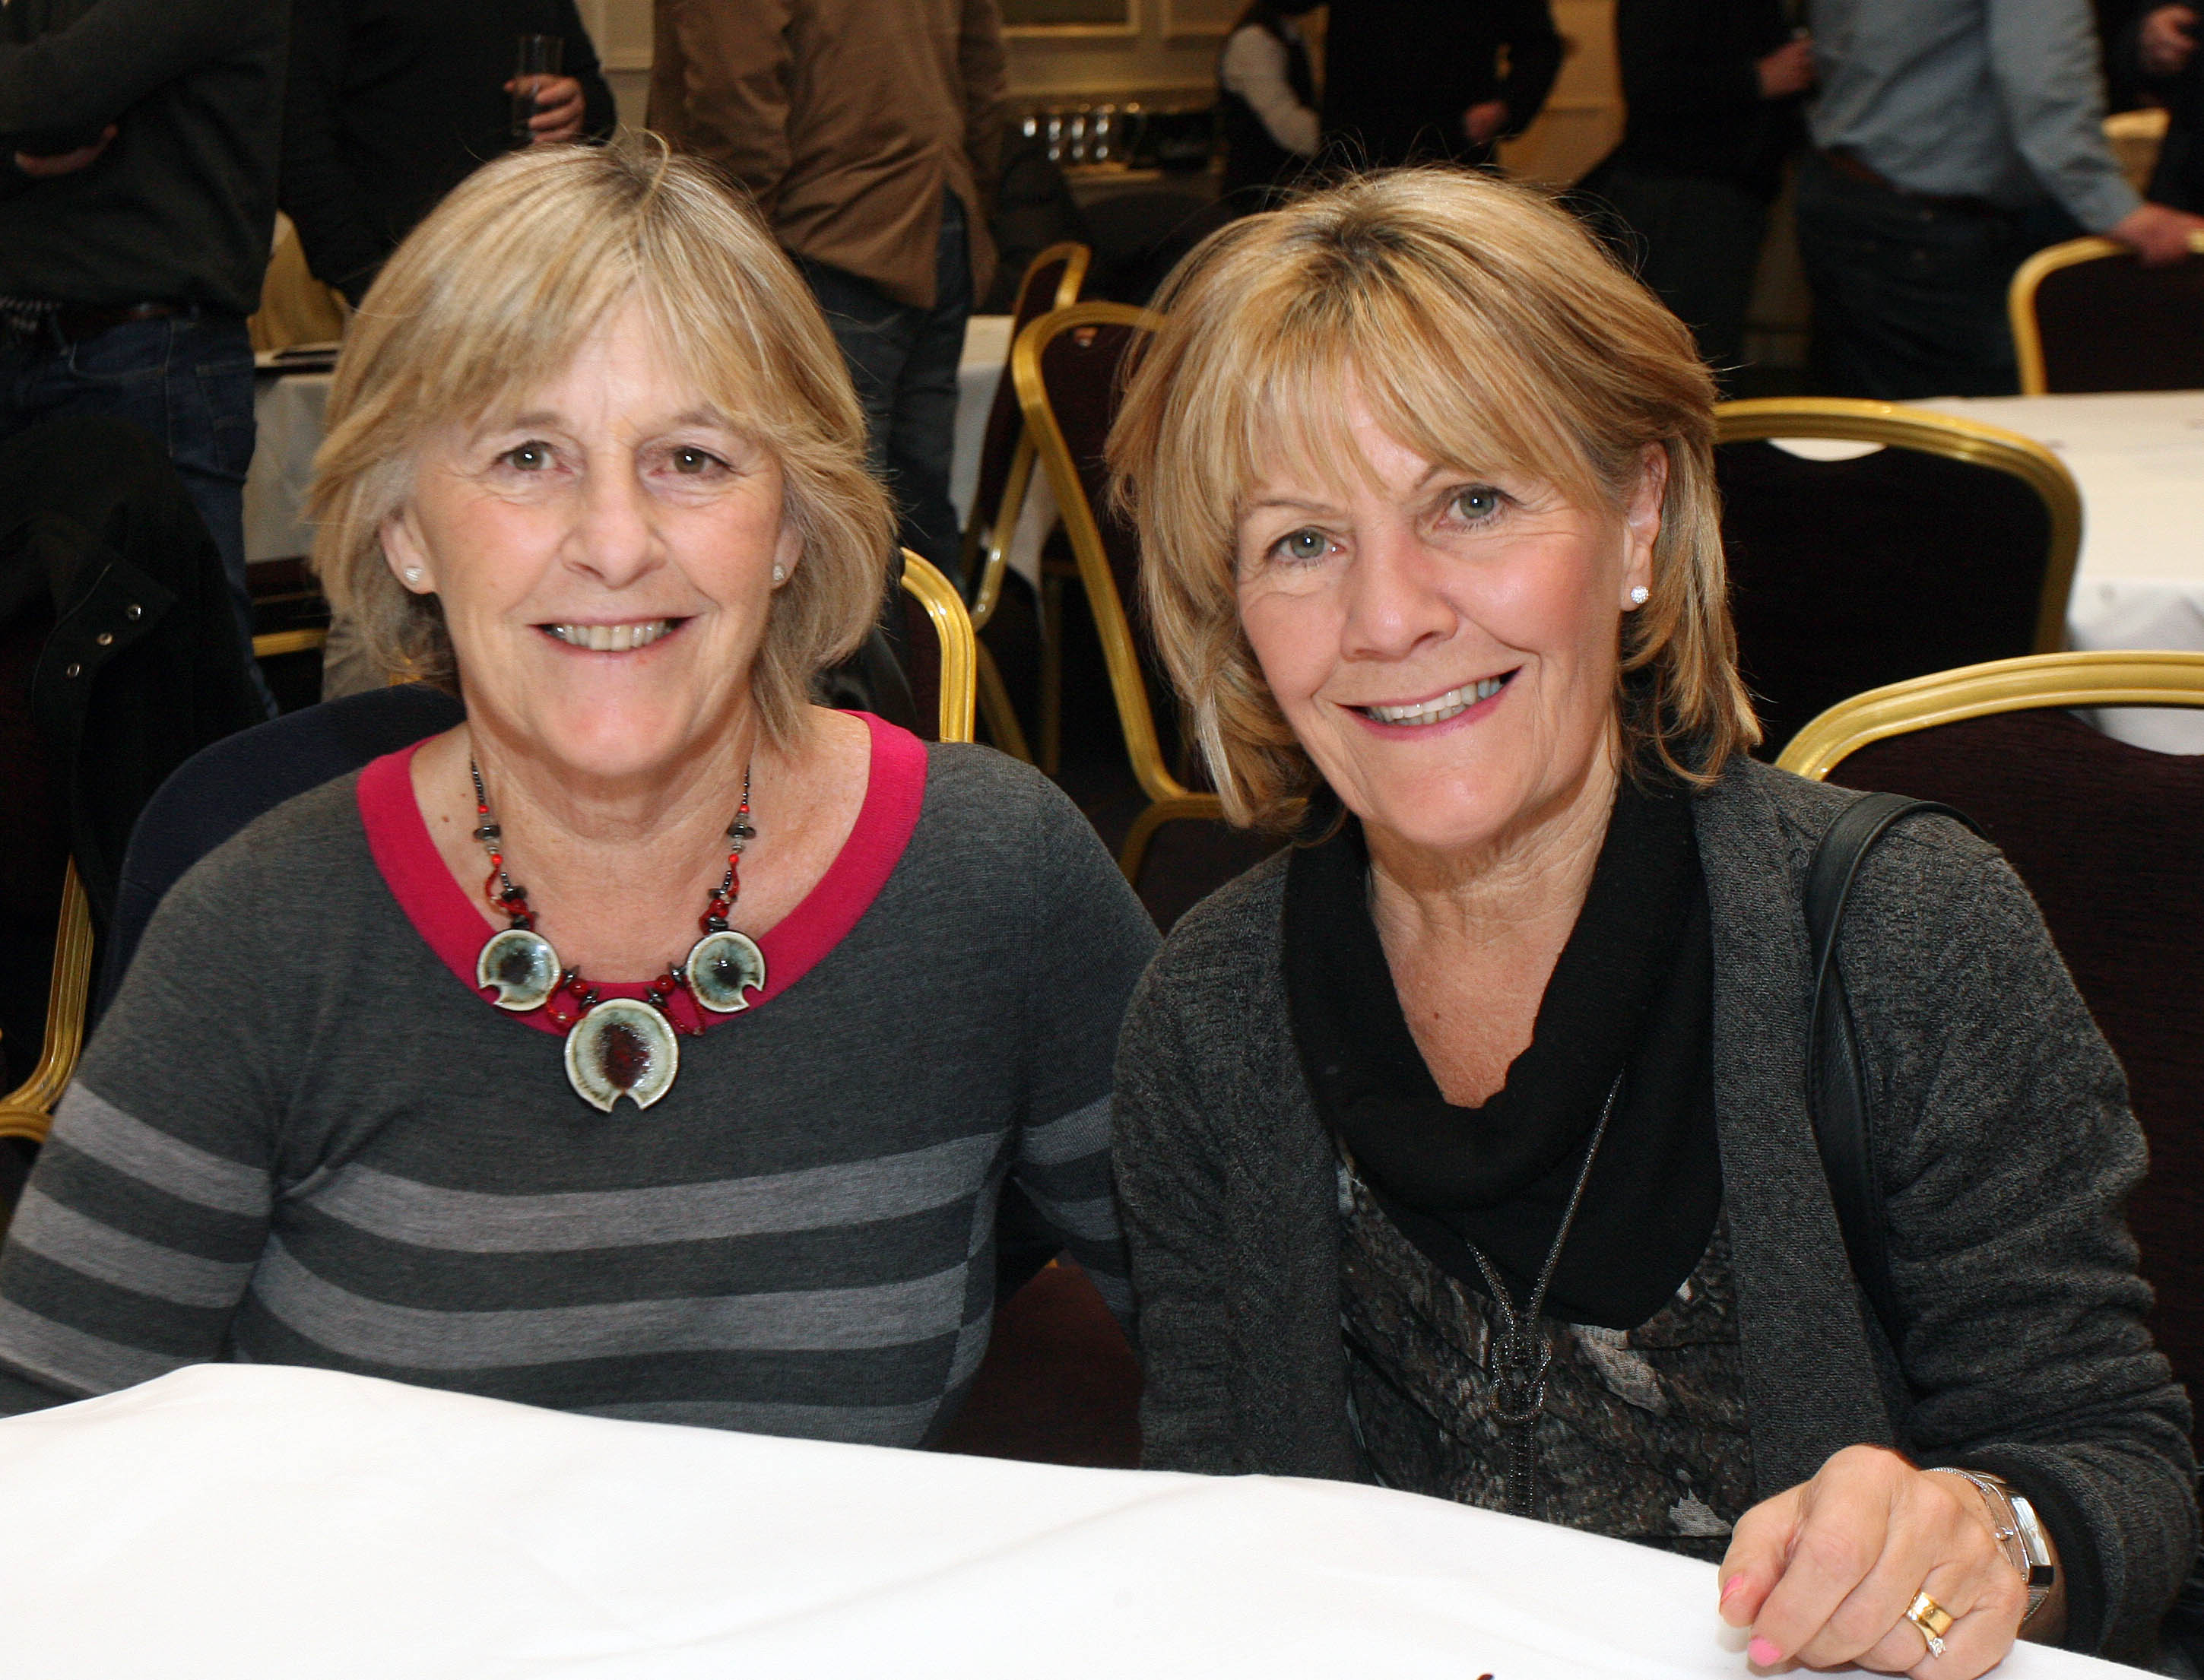 Bríd Rowe, Salthill and Mary Allen, Dublin, at the launch of the Galway Soccer Co-op supporting Galway United at Hotel Meyrick.